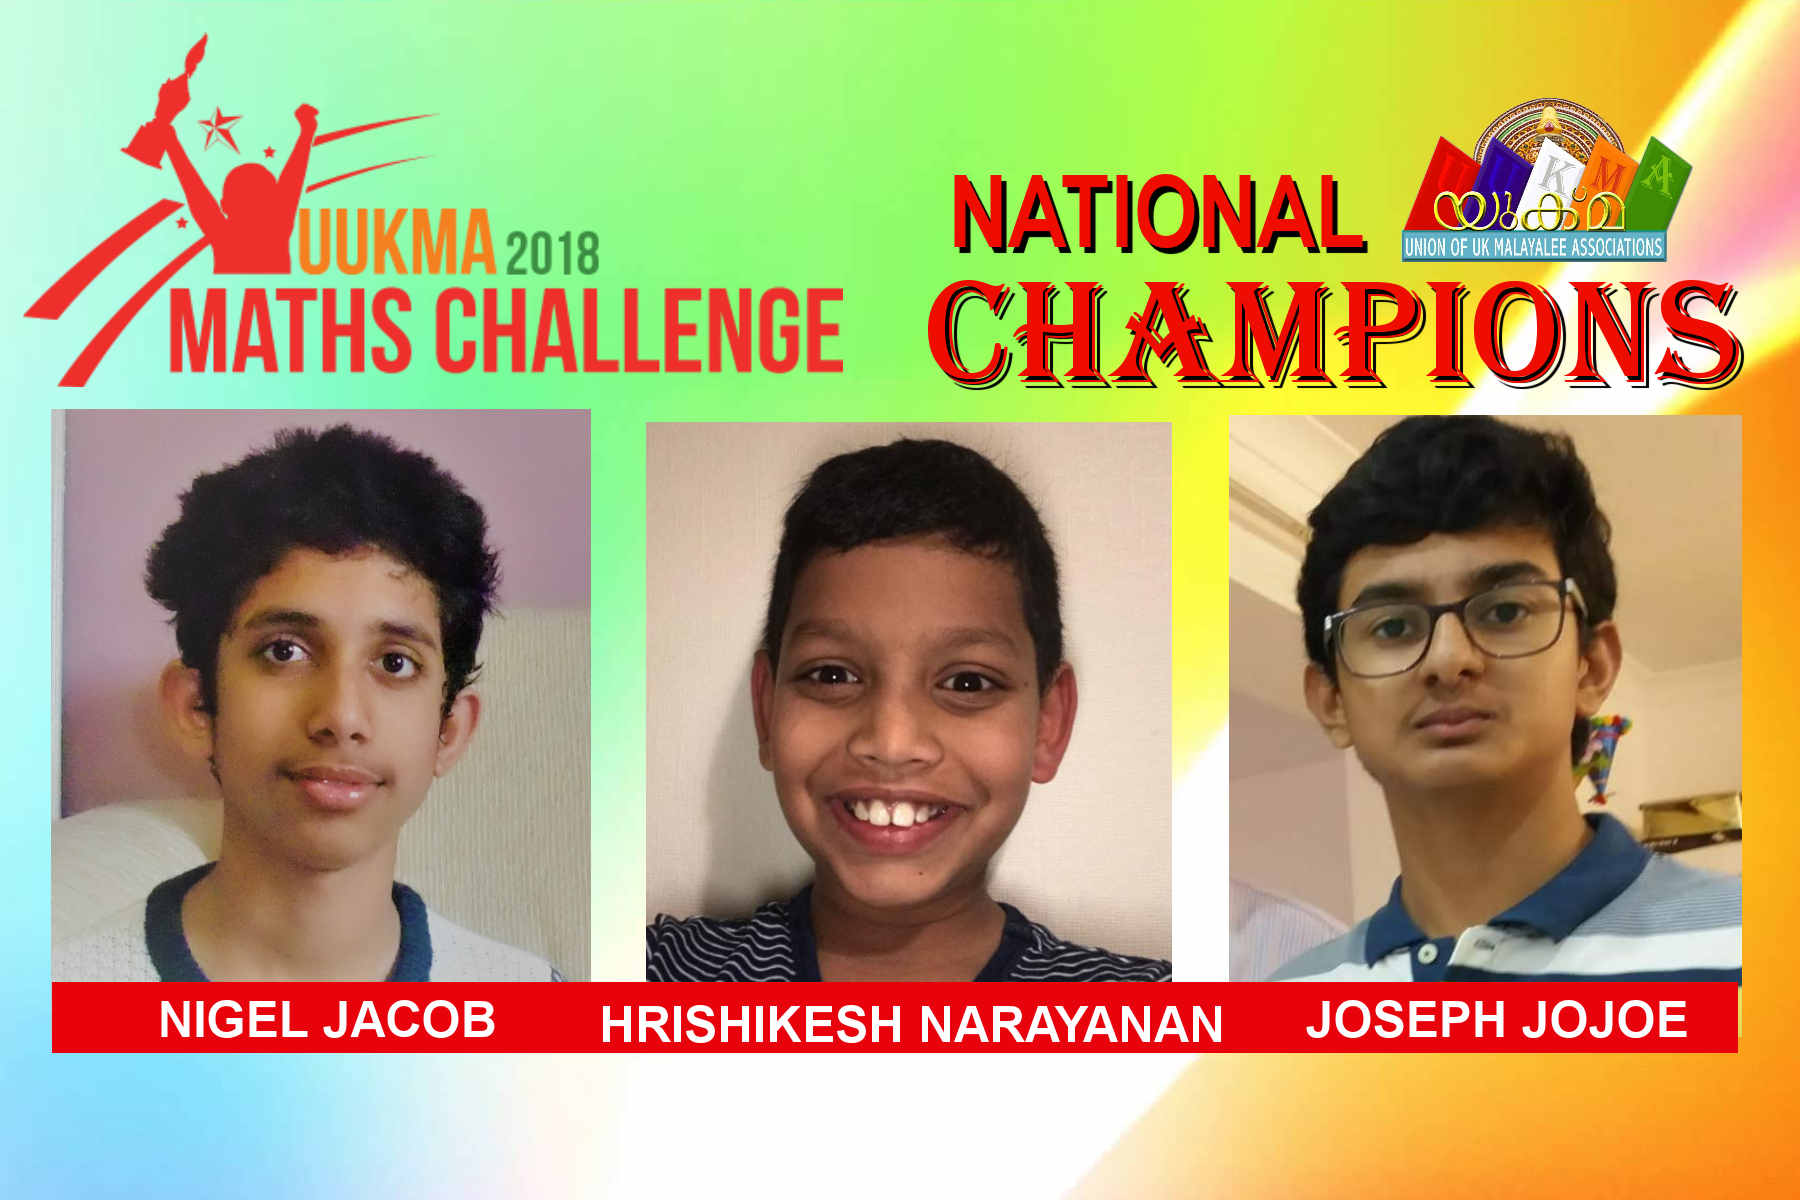 https://uukmanews.com/uukma-maths-challenge-winners18/